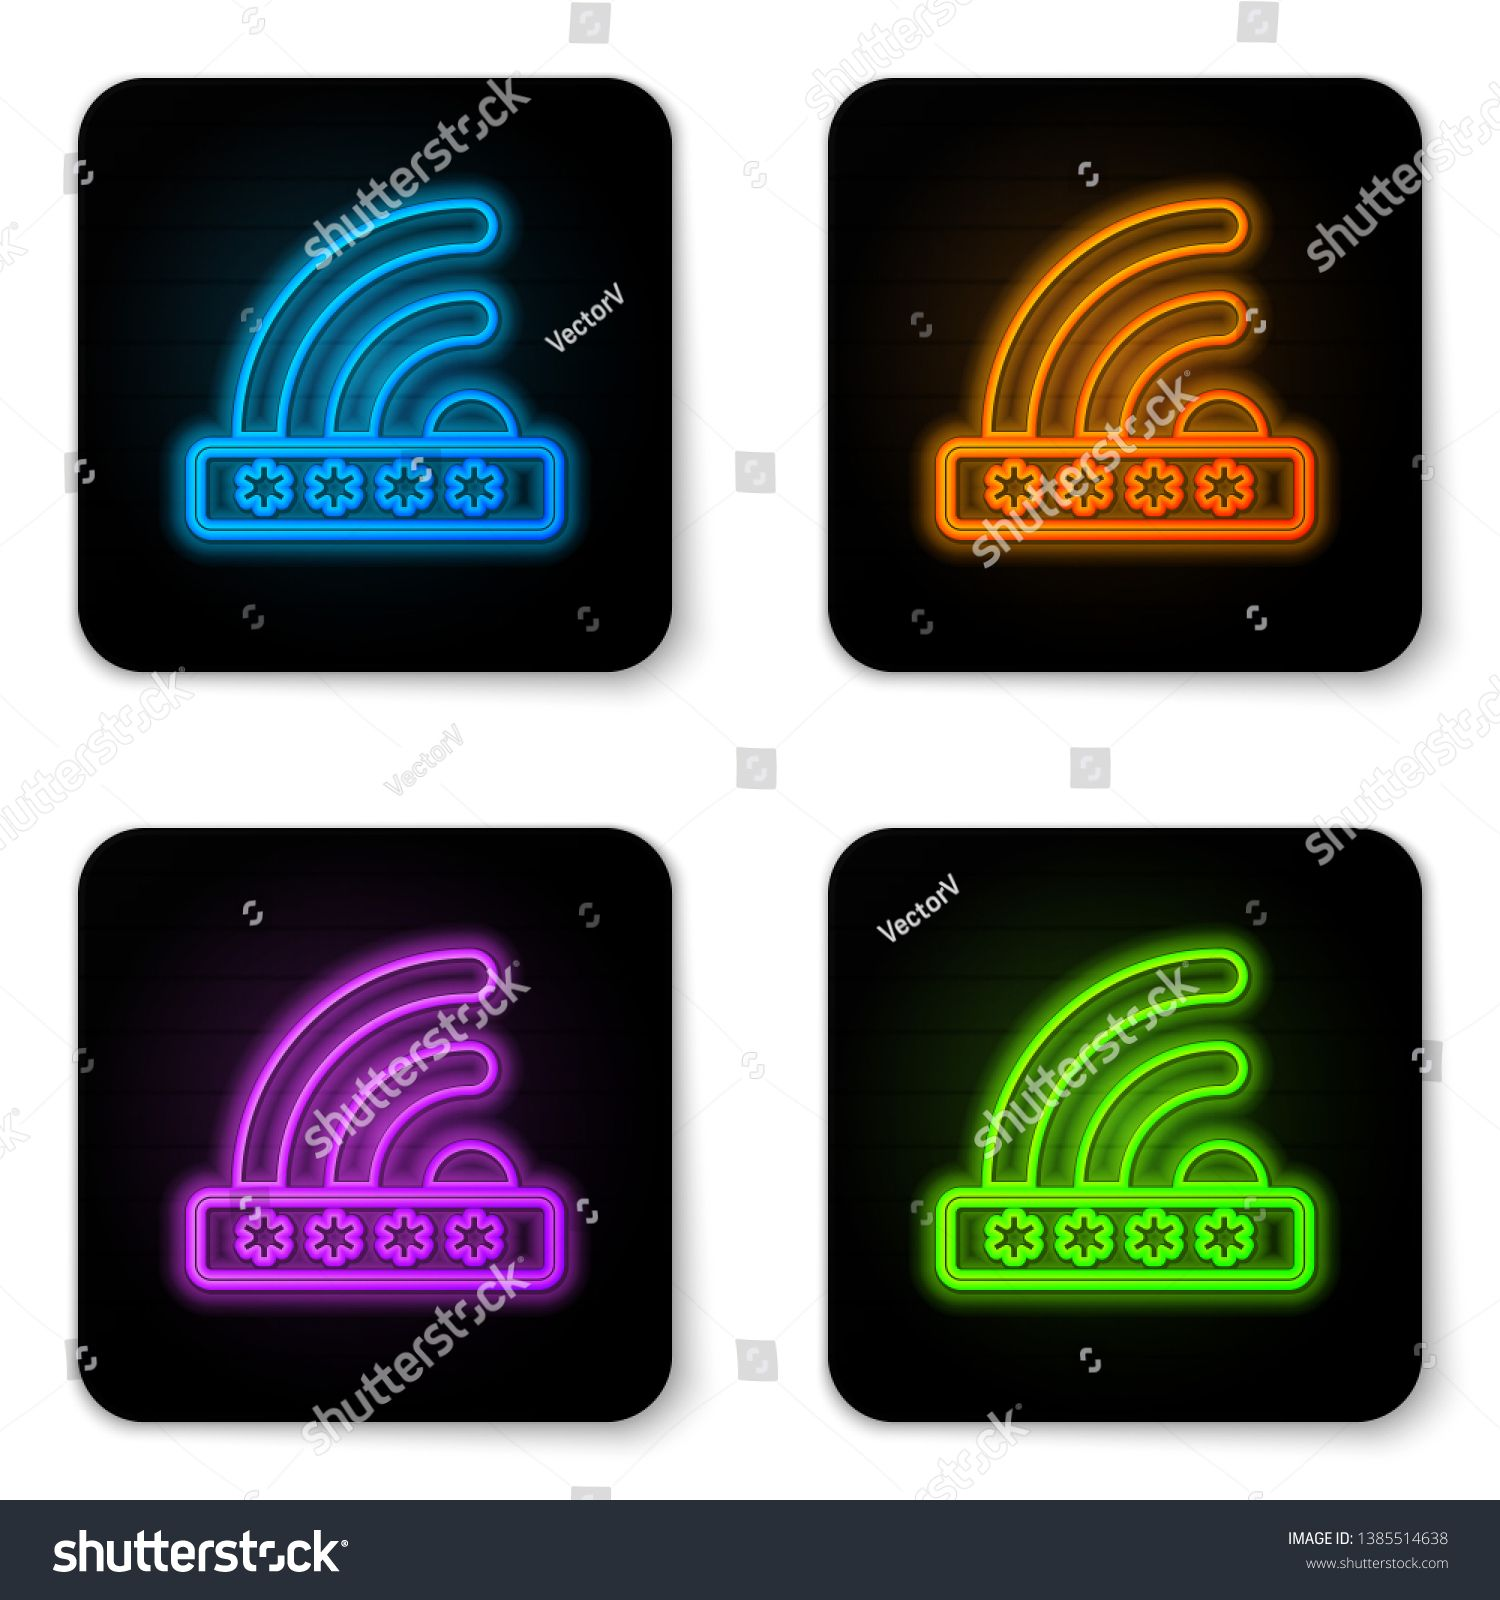 Glowing neon Wifi locked sign icon isolated on white